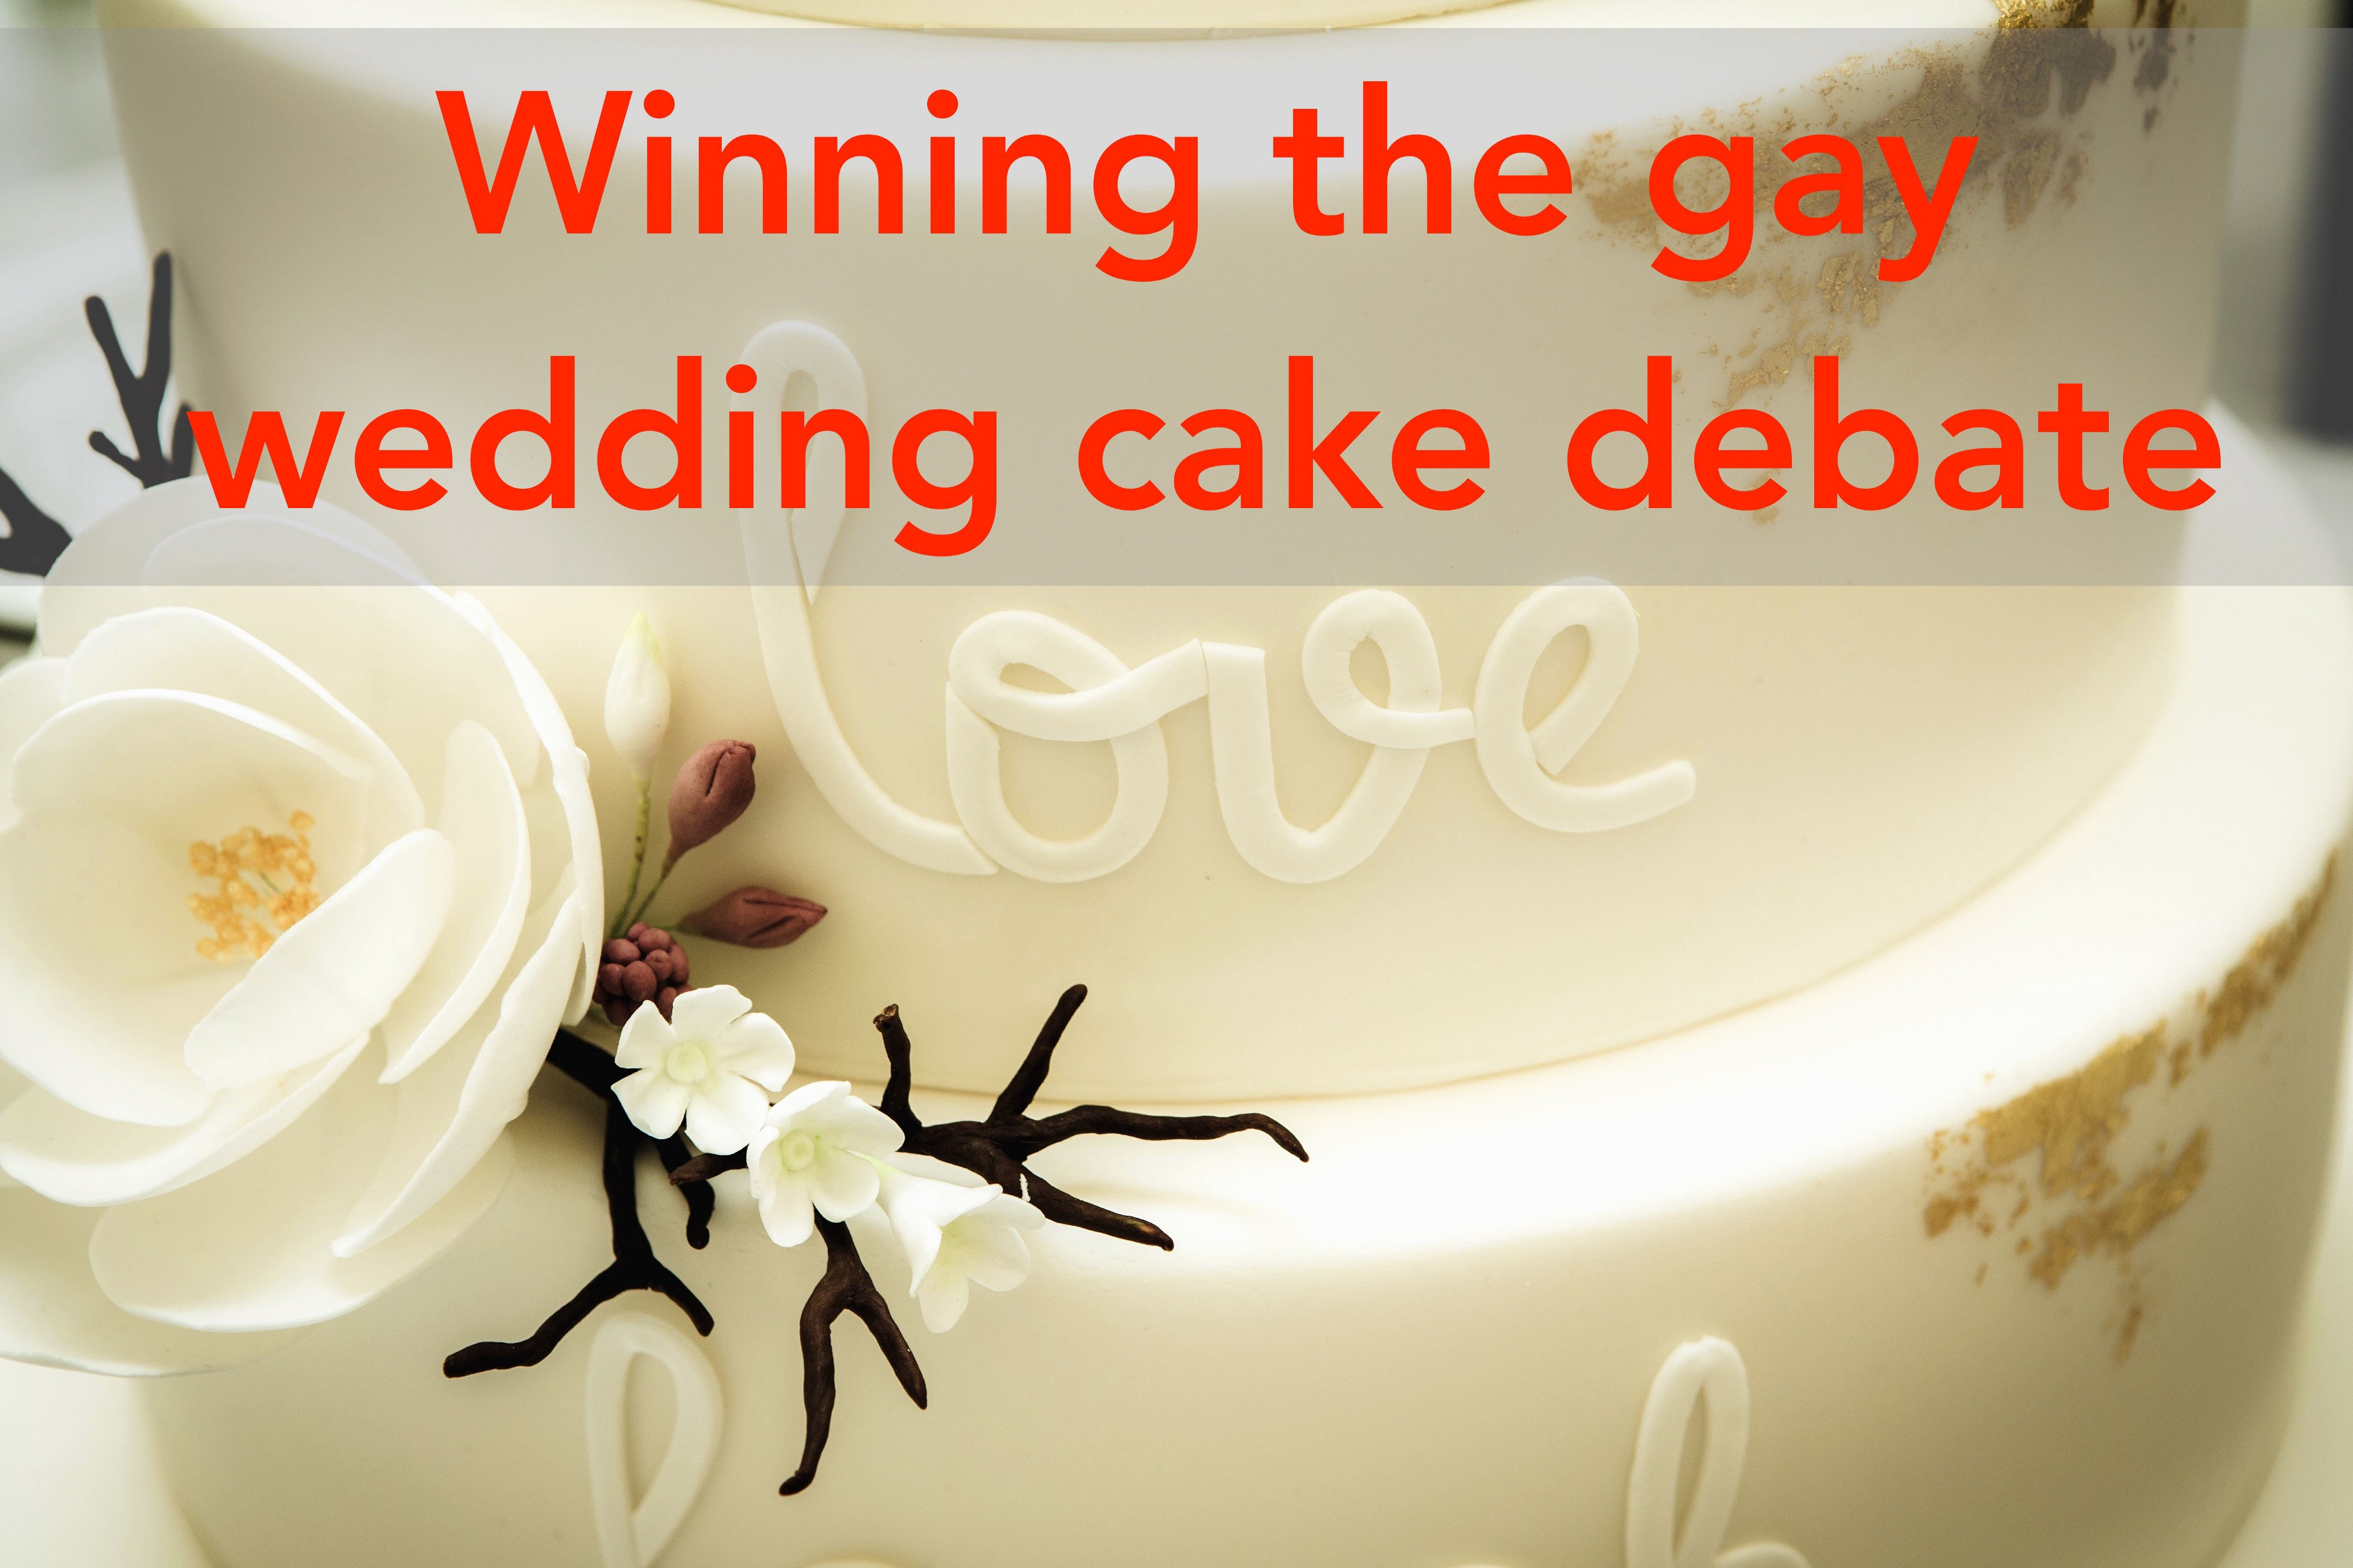 All You Need To Know To Win An Argument About The Gay Wedding Cake Case By Andrew L Seidel Medium